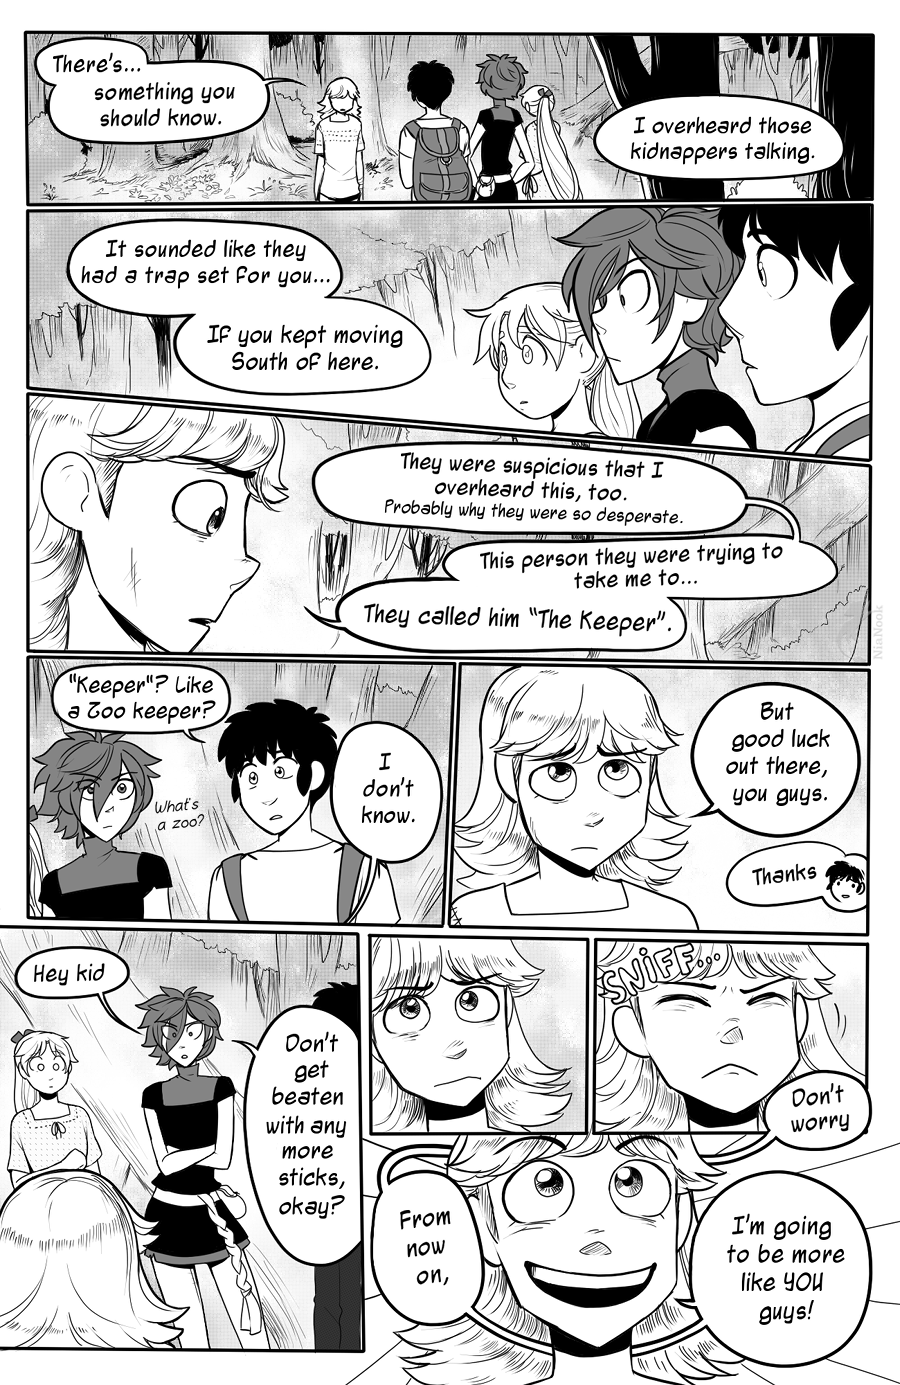 Page 37 (Book 5)